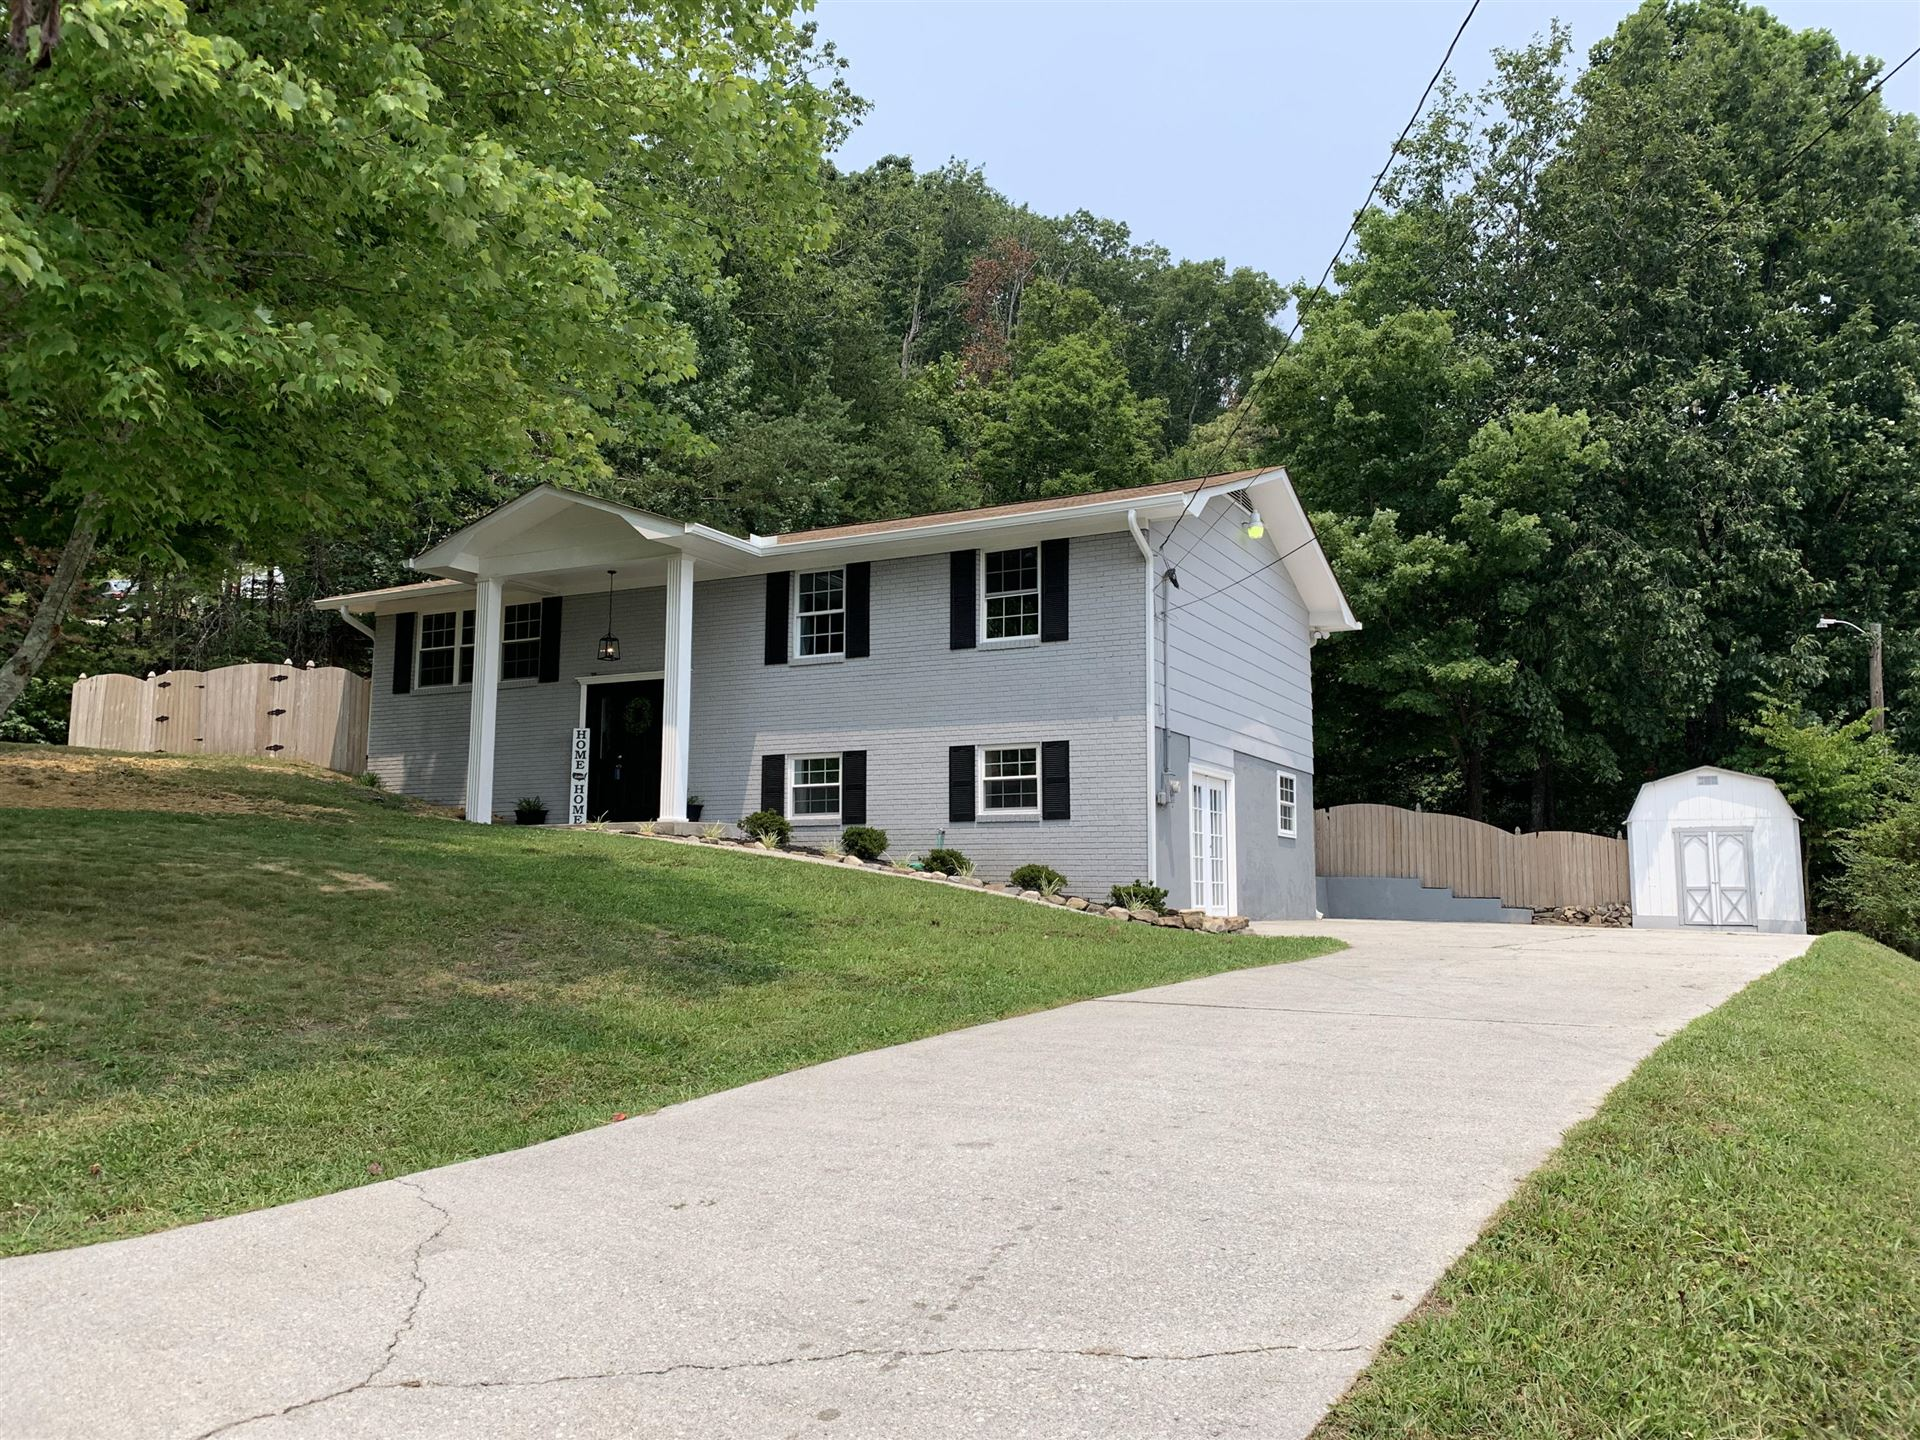 Photo of 6608 Northern Rd, Knoxville, TN 37918 (MLS # 1162363)